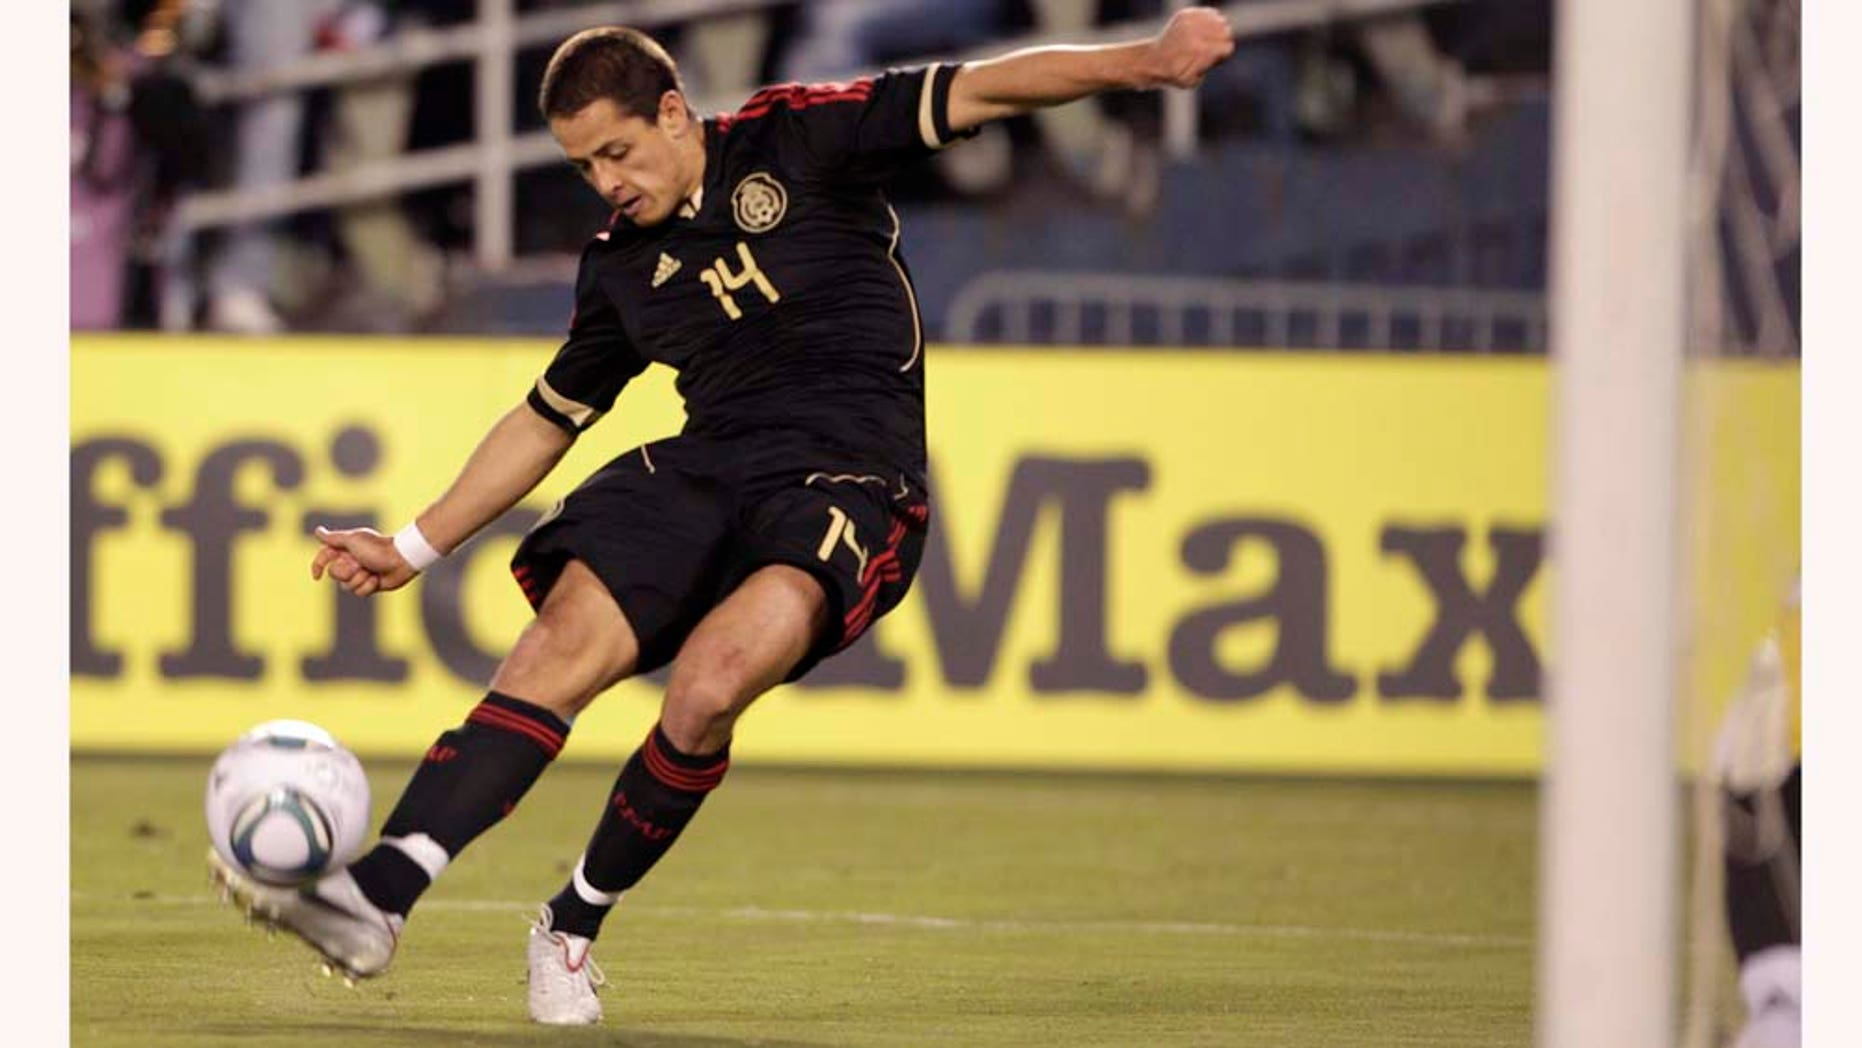 Mexico's Javier Hernandez misses a shot on goal at close range against Venezuela in the first half during an international friendly soccer match Tuesday, March 29, 2011, in San Diego. (AP Photo/Gregory Bull)